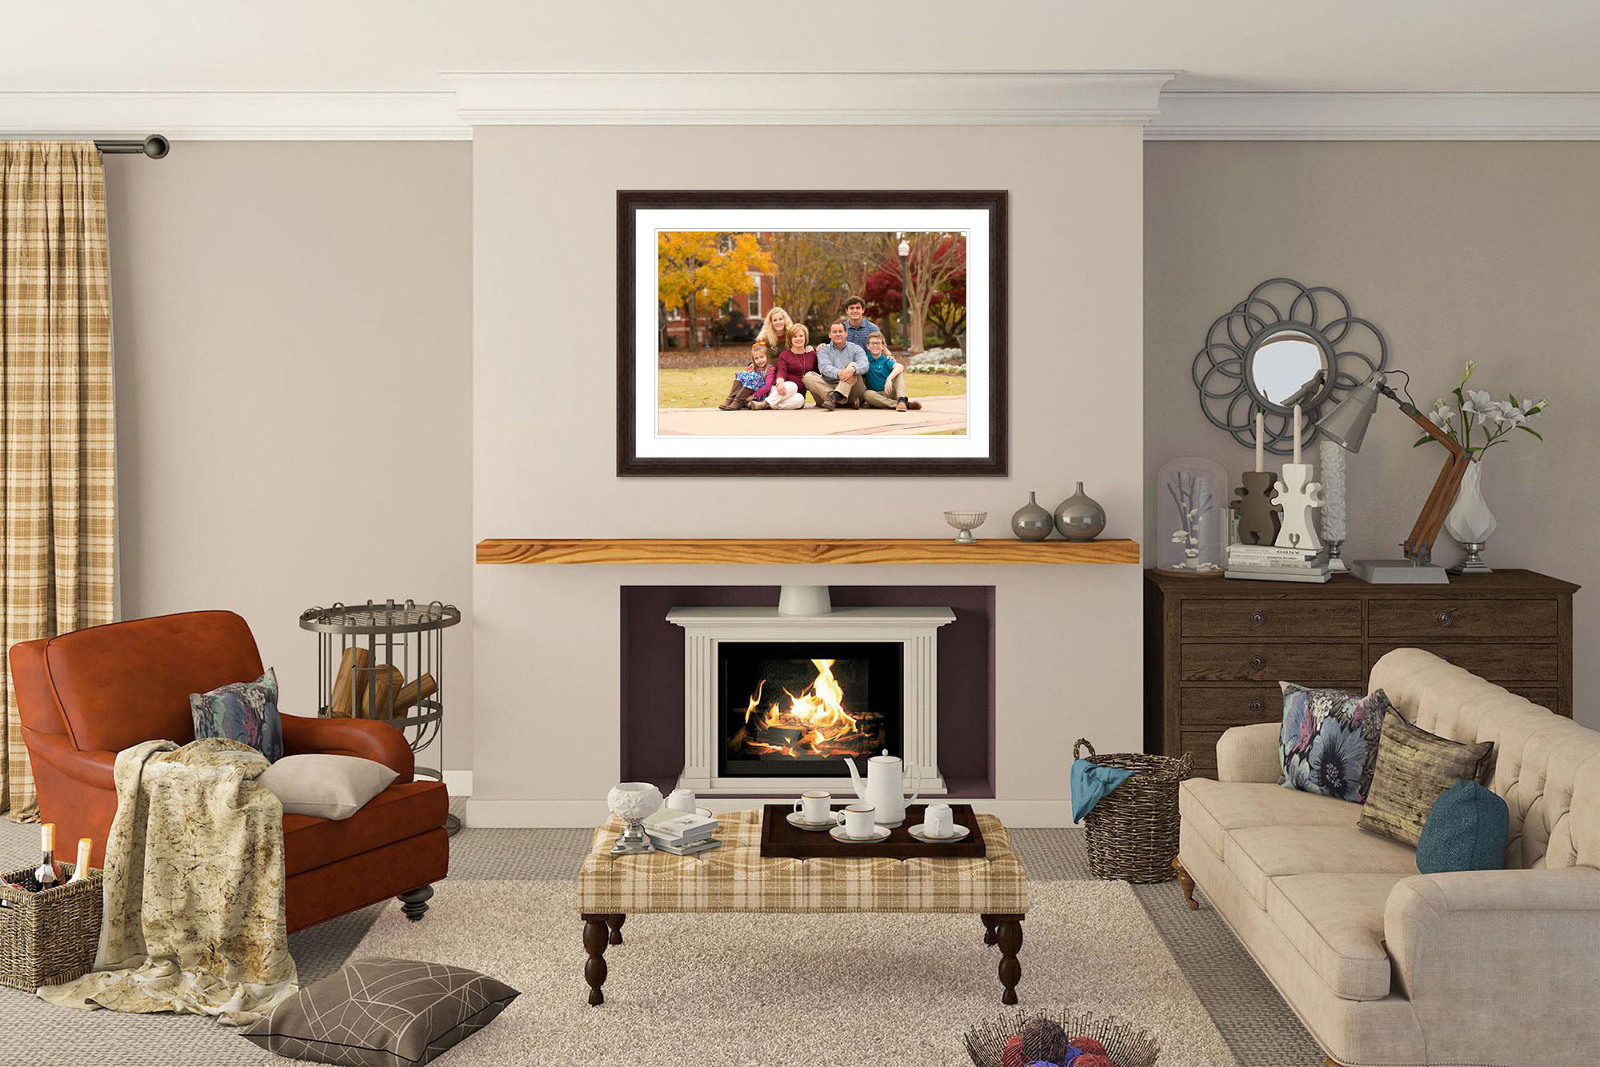 sample image of family portrait on wall